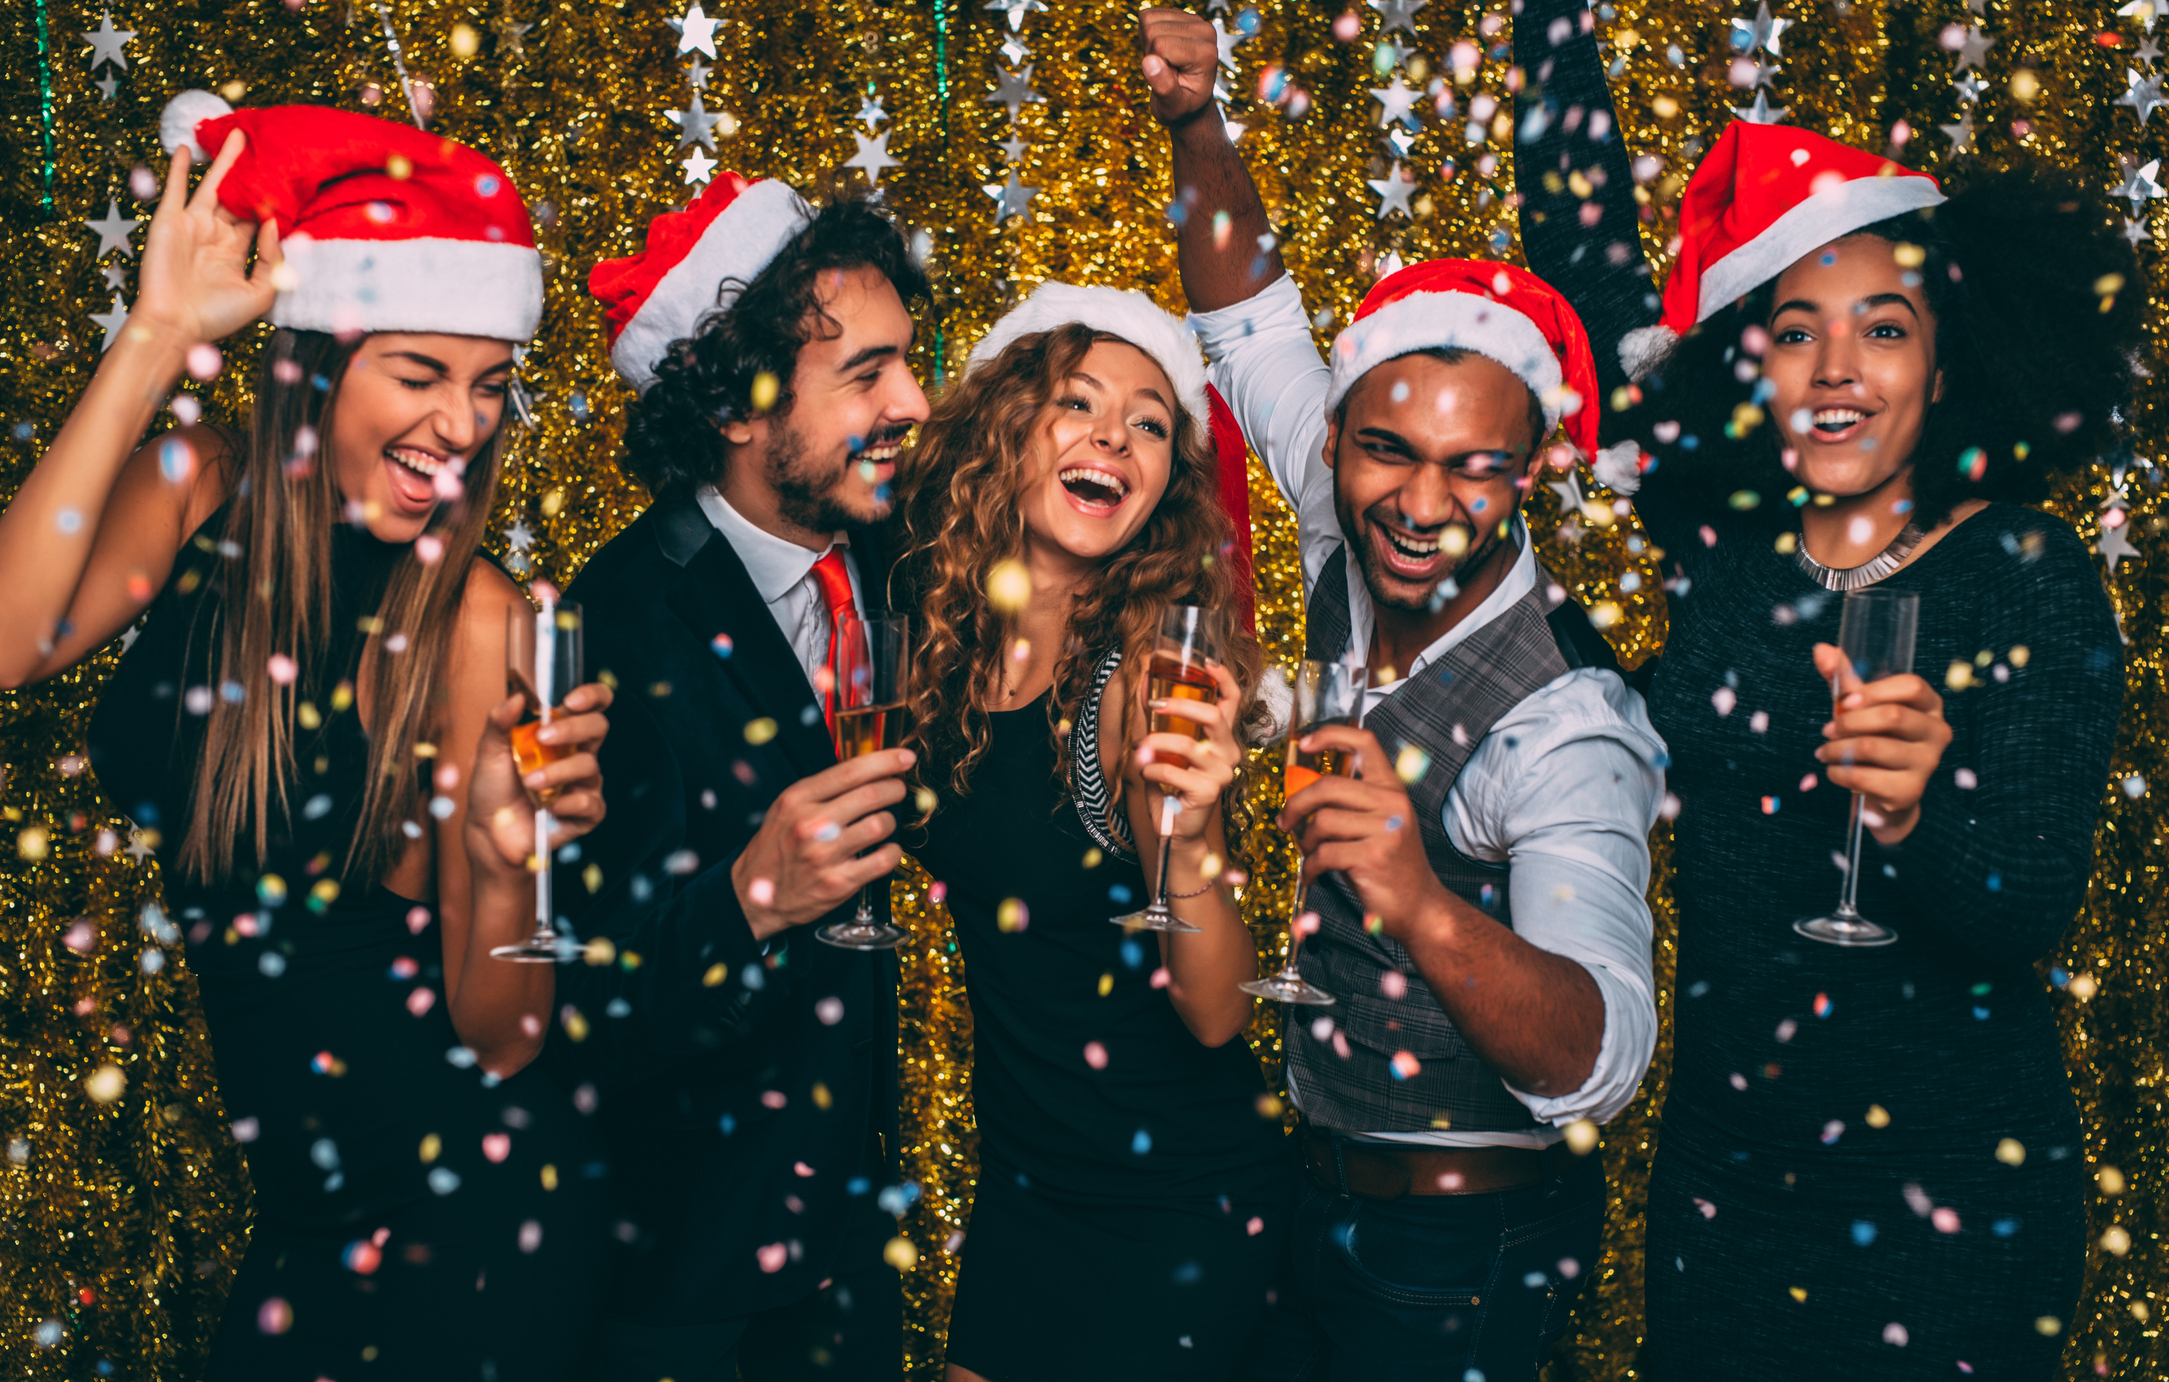 abstinence amid the work christmas party wonders never cease abstinence amid the work christmas party wonders never cease ian rose recently quit drinking but christmas is looming to test his mettle